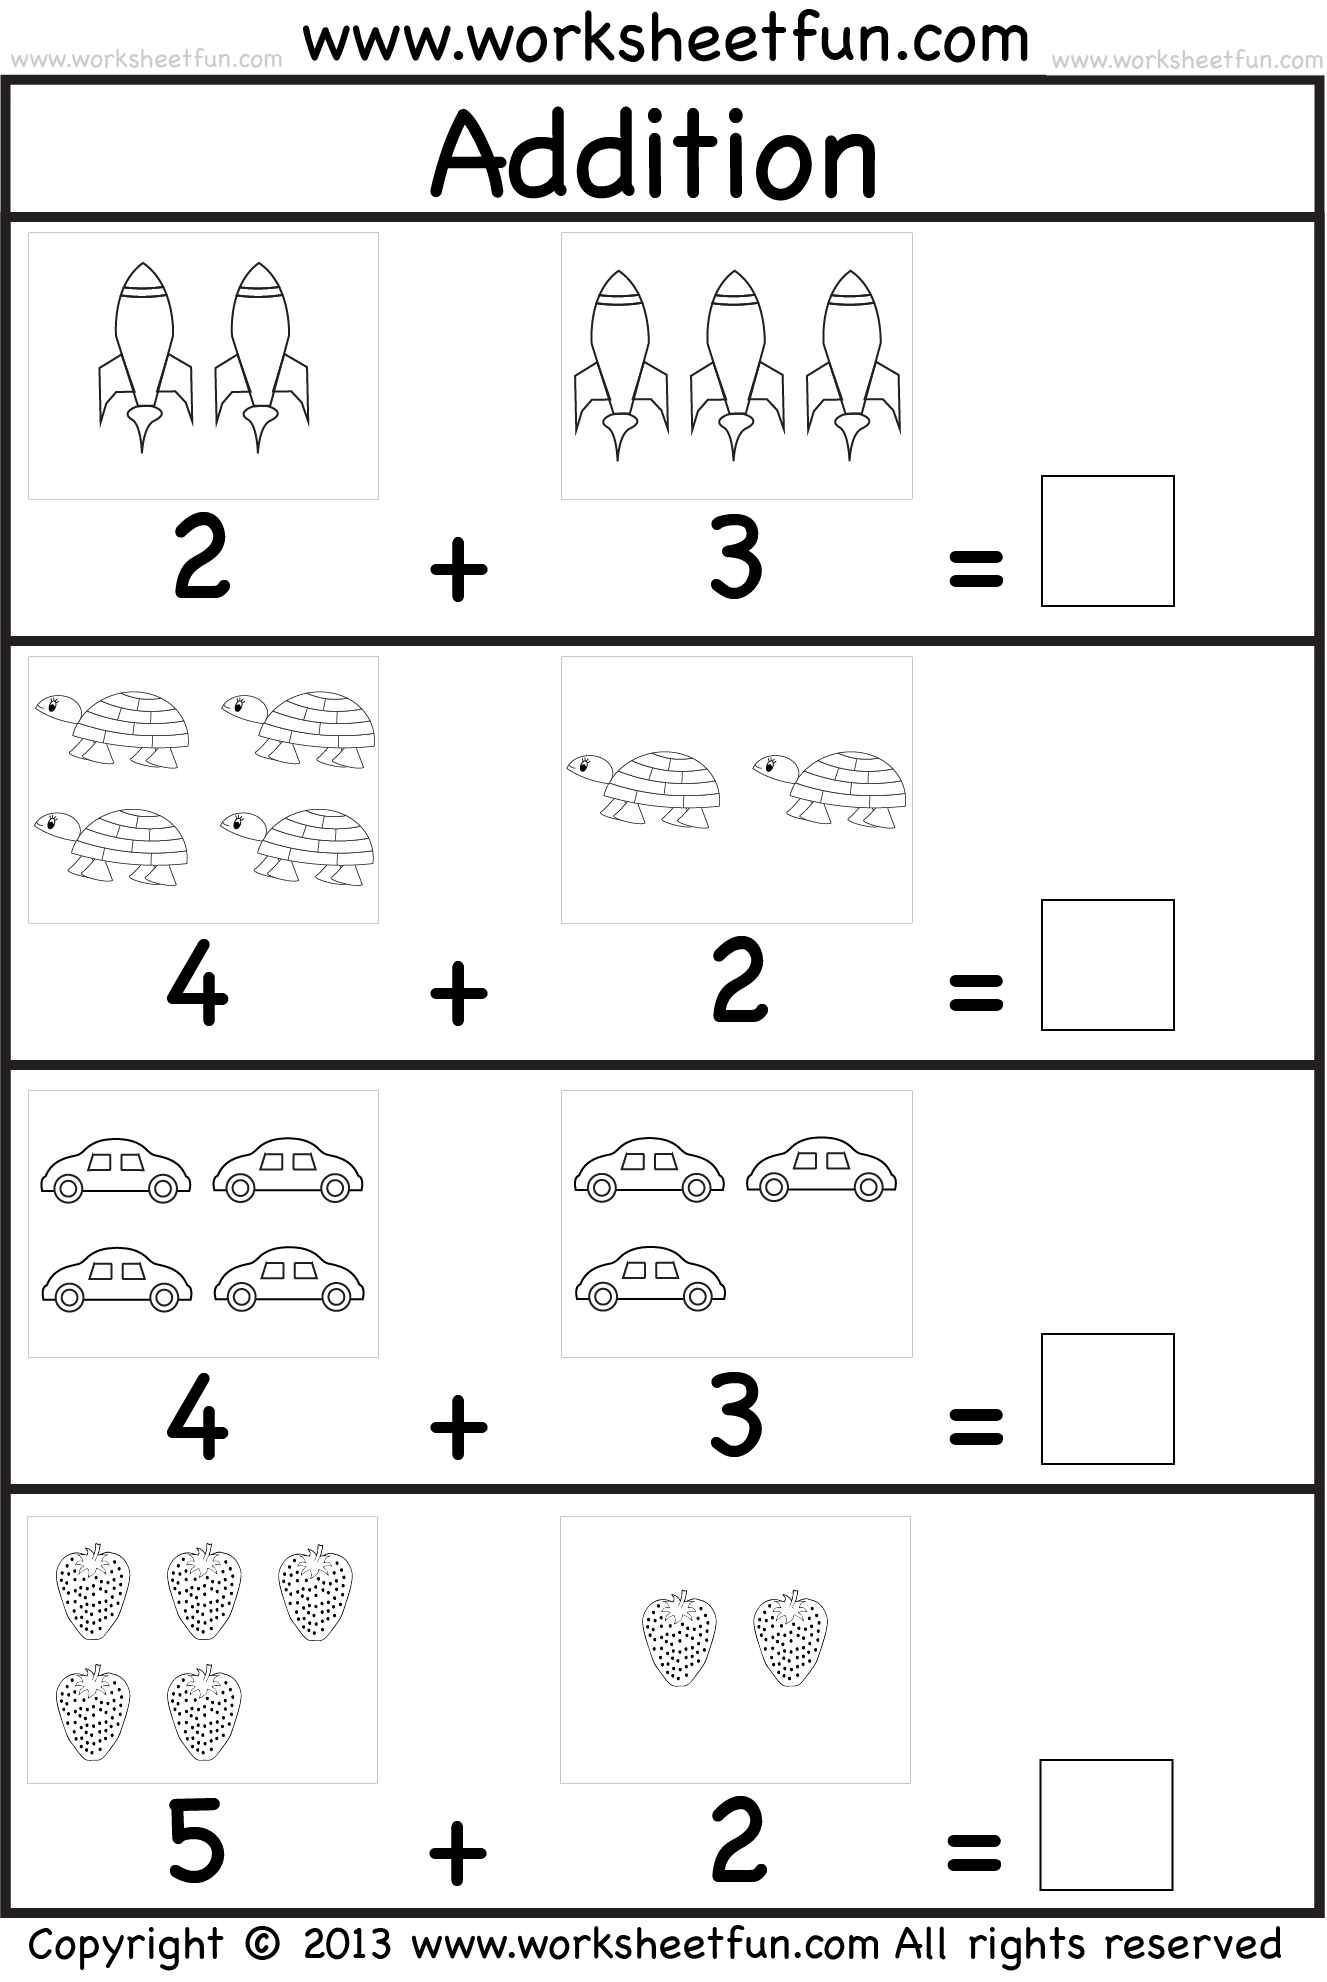 addition worksheet This site has great free worksheets for – Free Printable Worksheets for Math